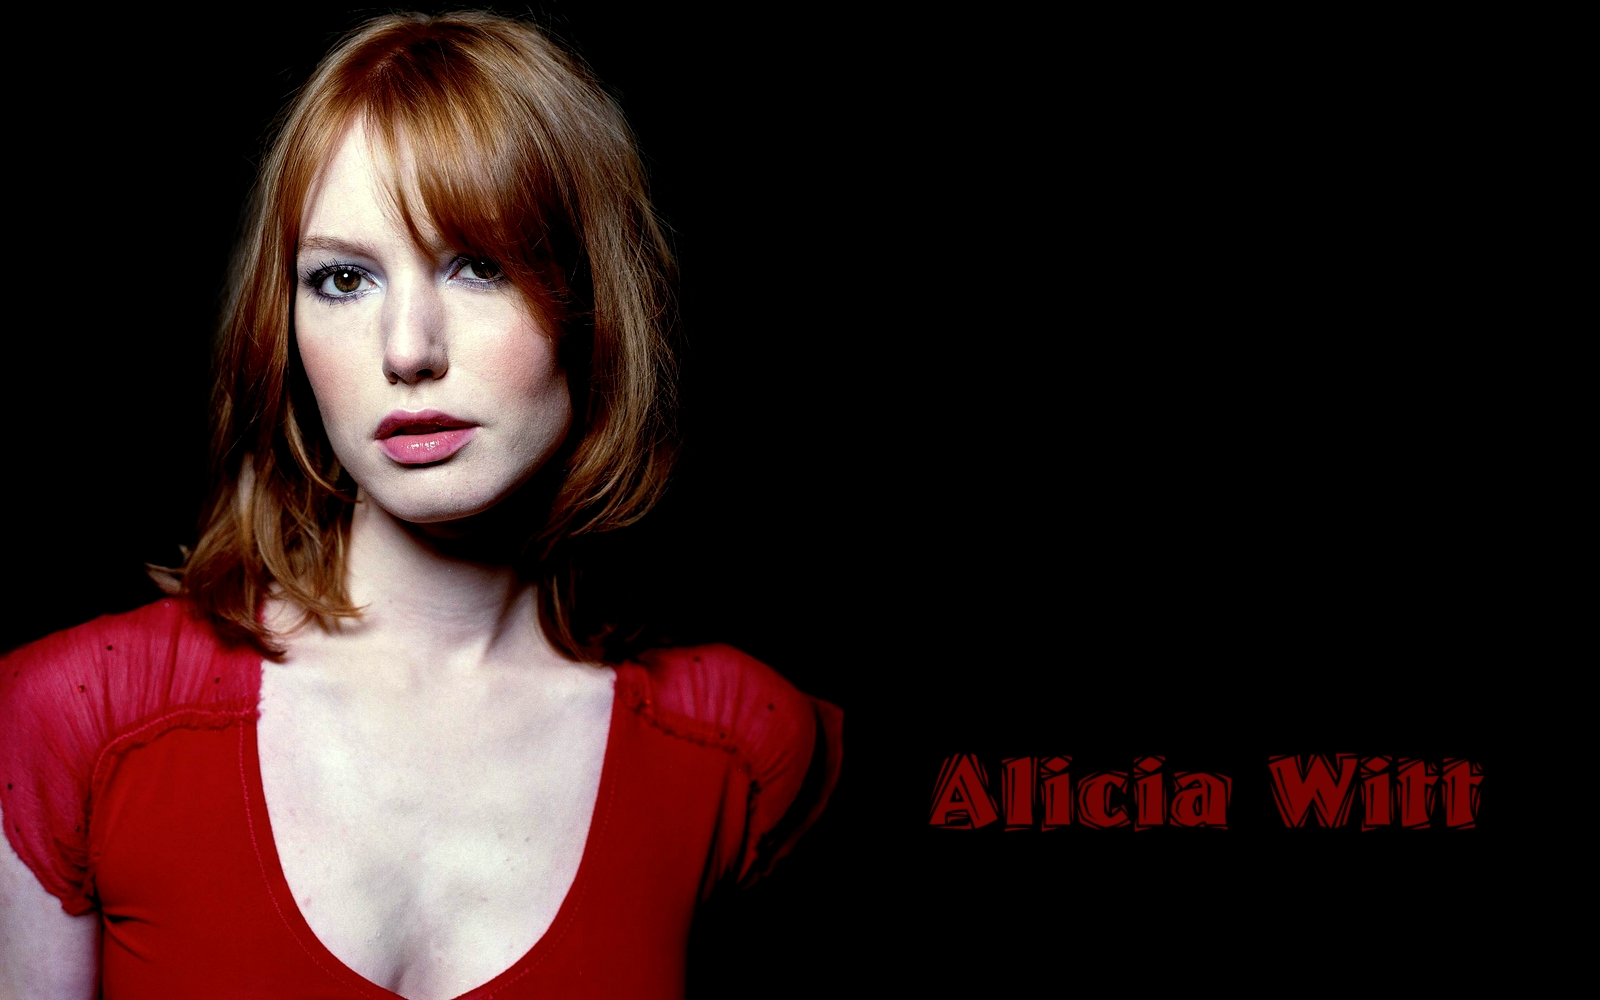 alicia witt walking deadalicia witt walking dead, alicia witt foto, alicia witt photo, alicia witt supernatural, alicia witt wiki, alicia witt films, alicia witt wdw, alicia witt that's incredible, alicia witt album, alicia witt instagram, alicia witt 2016, alicia witt boyfriend husband, alicia witt music, alicia witt wikipedia, alicia witt fansite, alicia witt nibelungen